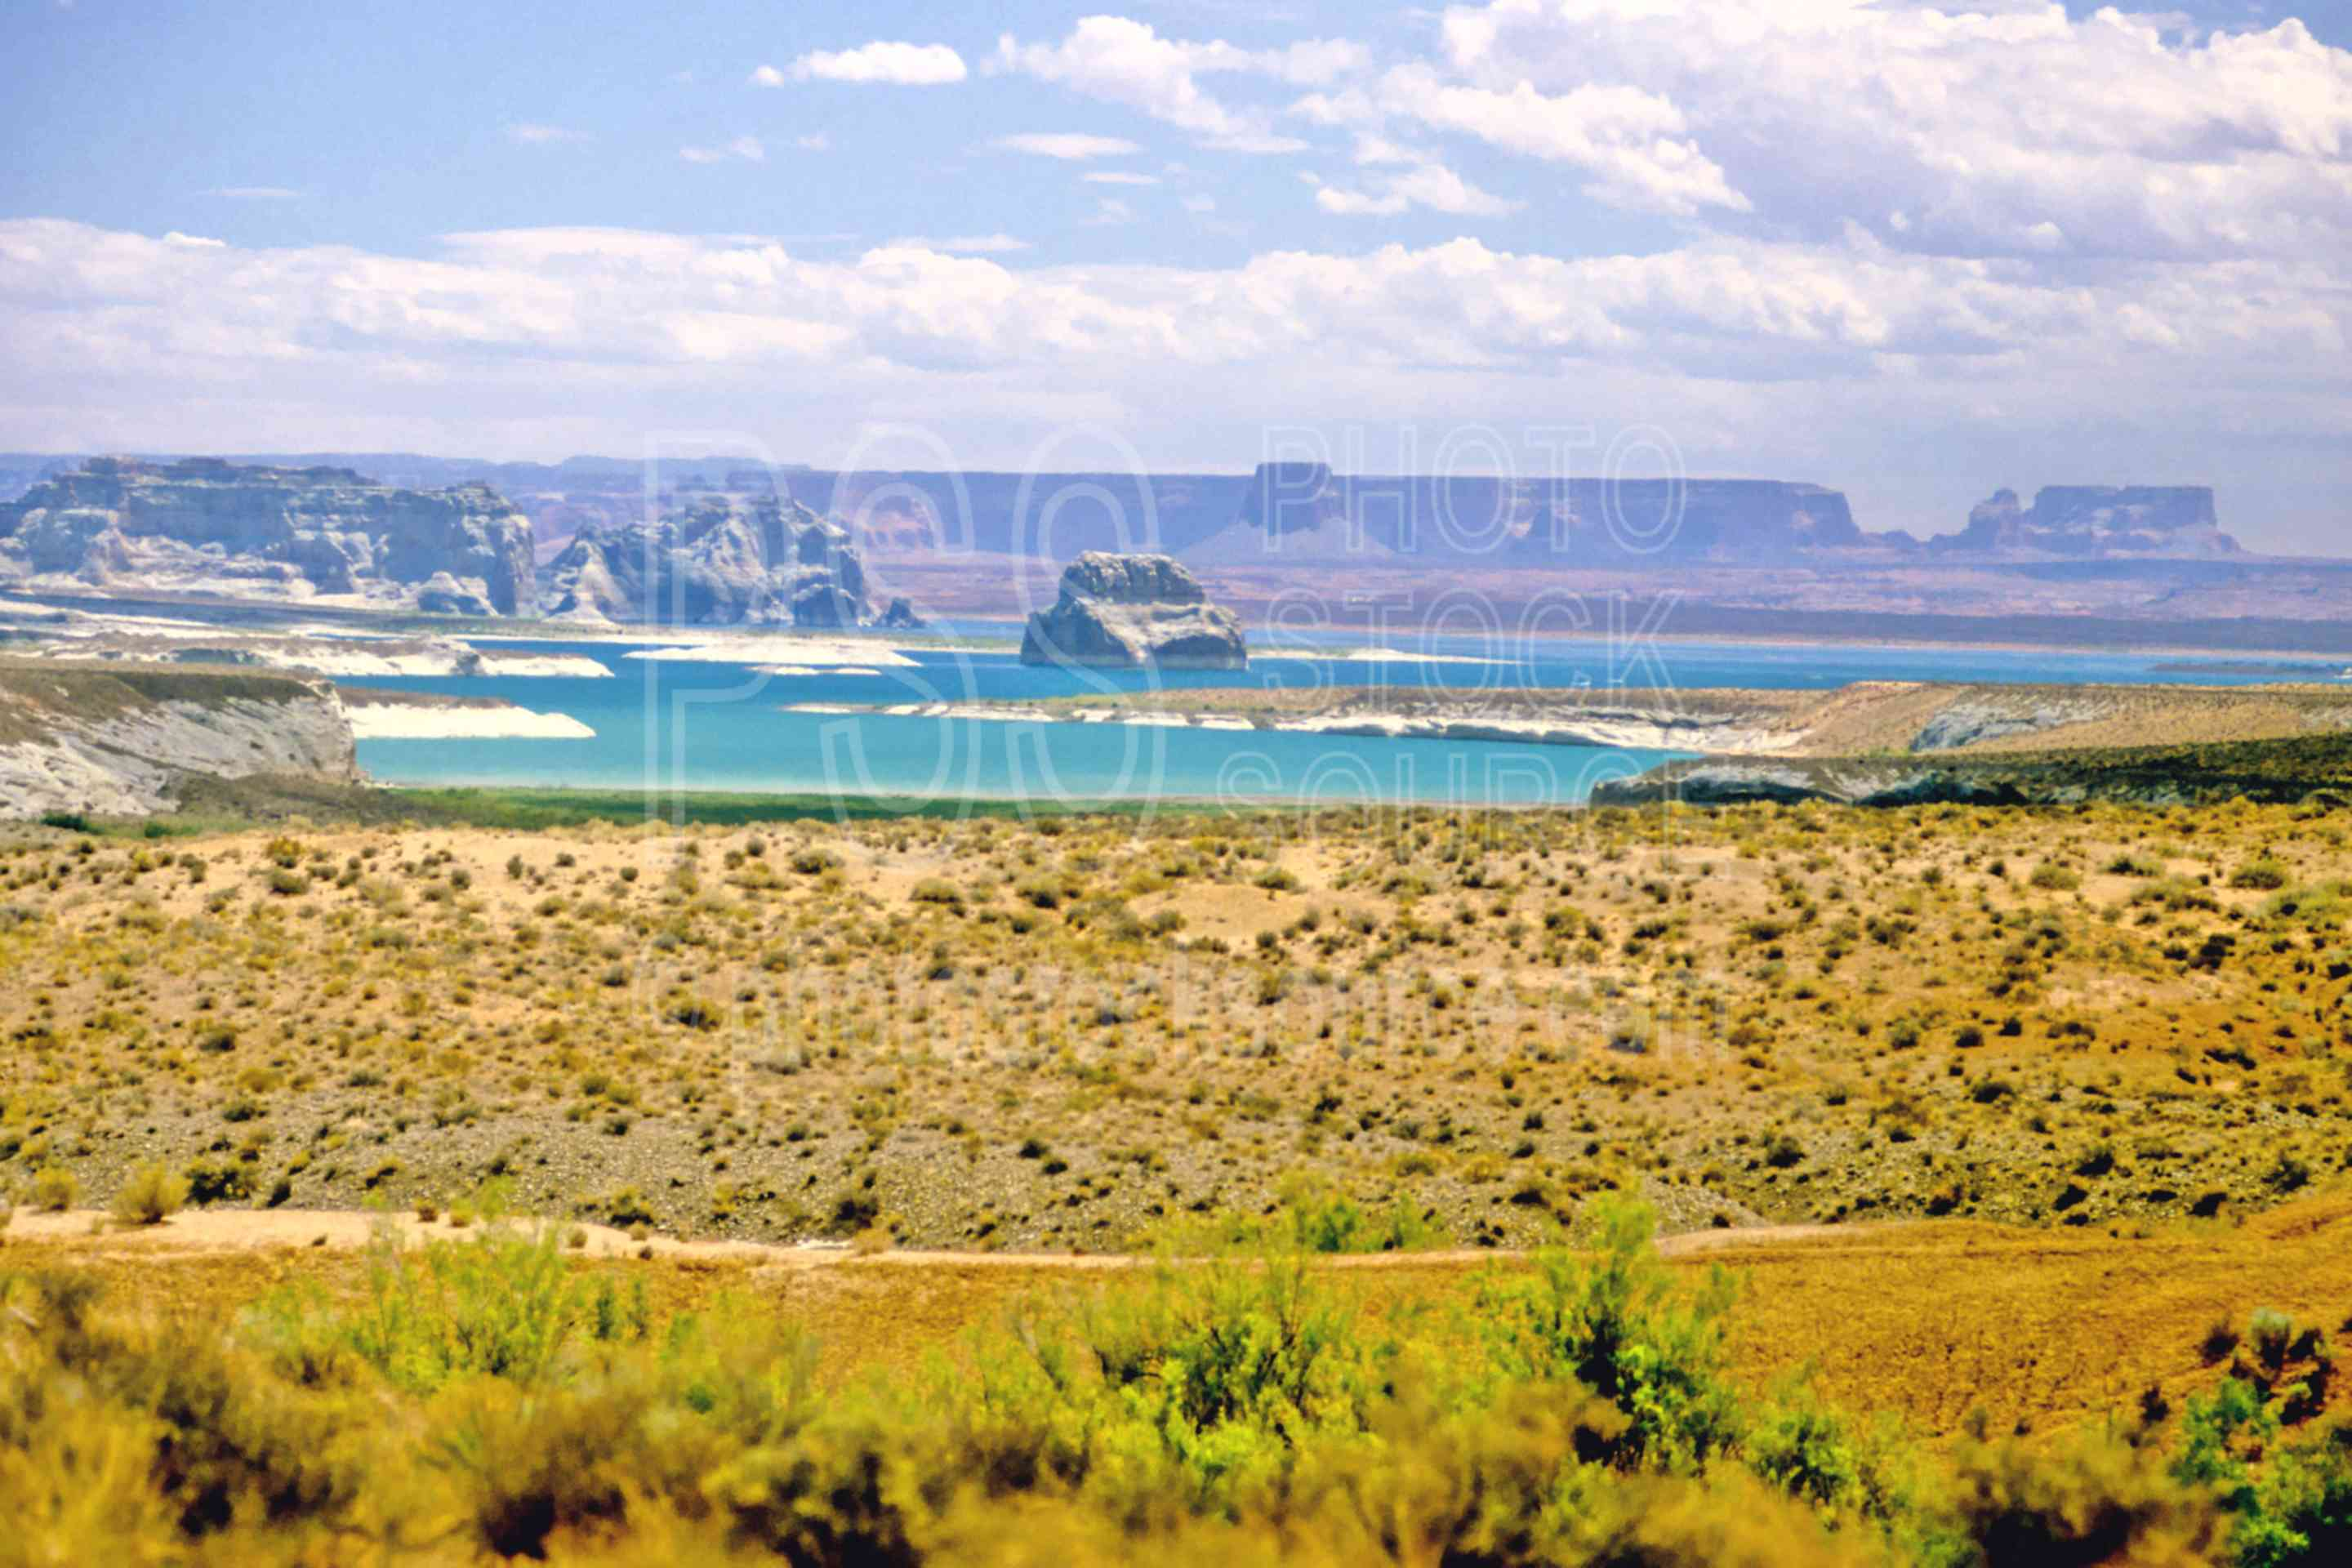 Lake Powell,usas,lakes rivers,nature